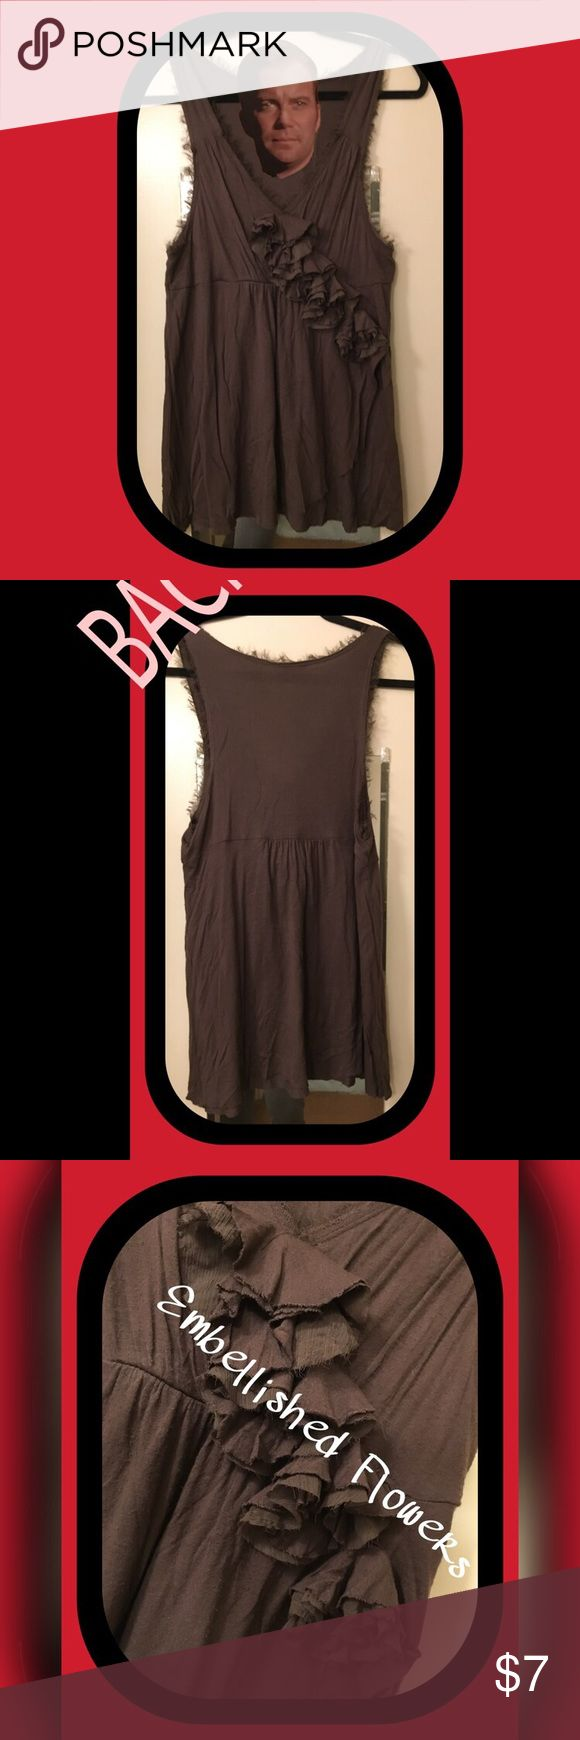 💋💋 CANDIES Low Cut Tank w/ Embellished 🌺 💋💋 💋💋 CANDIES Low Cut Tank w/ Embellished Flowers Size Large 💋💋 Dark Brown Tank Top that really makes your 'GIRLS' look AWESOME!!  Empire waist is where the flowers settle with a nice FLOW underneath.  The hem got VERY frizzle after a few washes but it kinda matches the MO of the top 🤔🤗😃 Candie's Tops Tank Tops